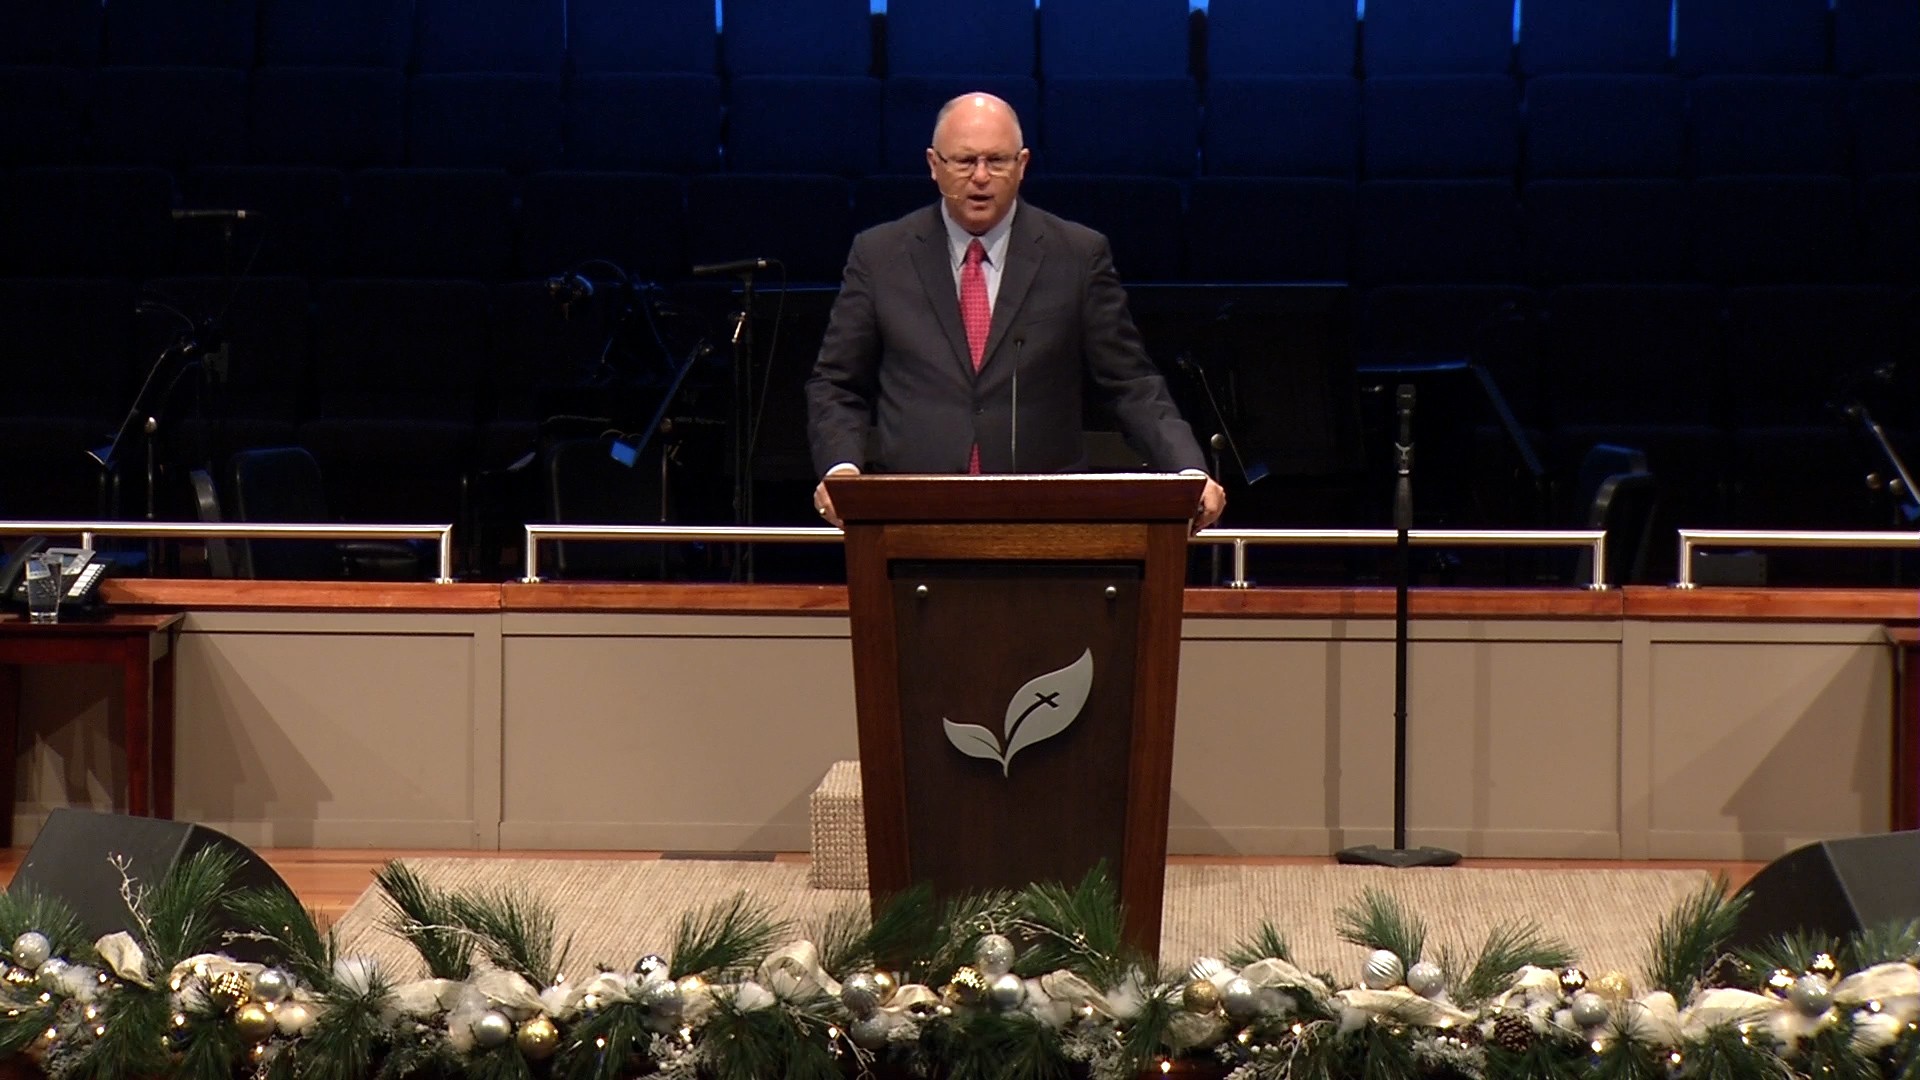 Pastor Paul Chappell: The Announcement